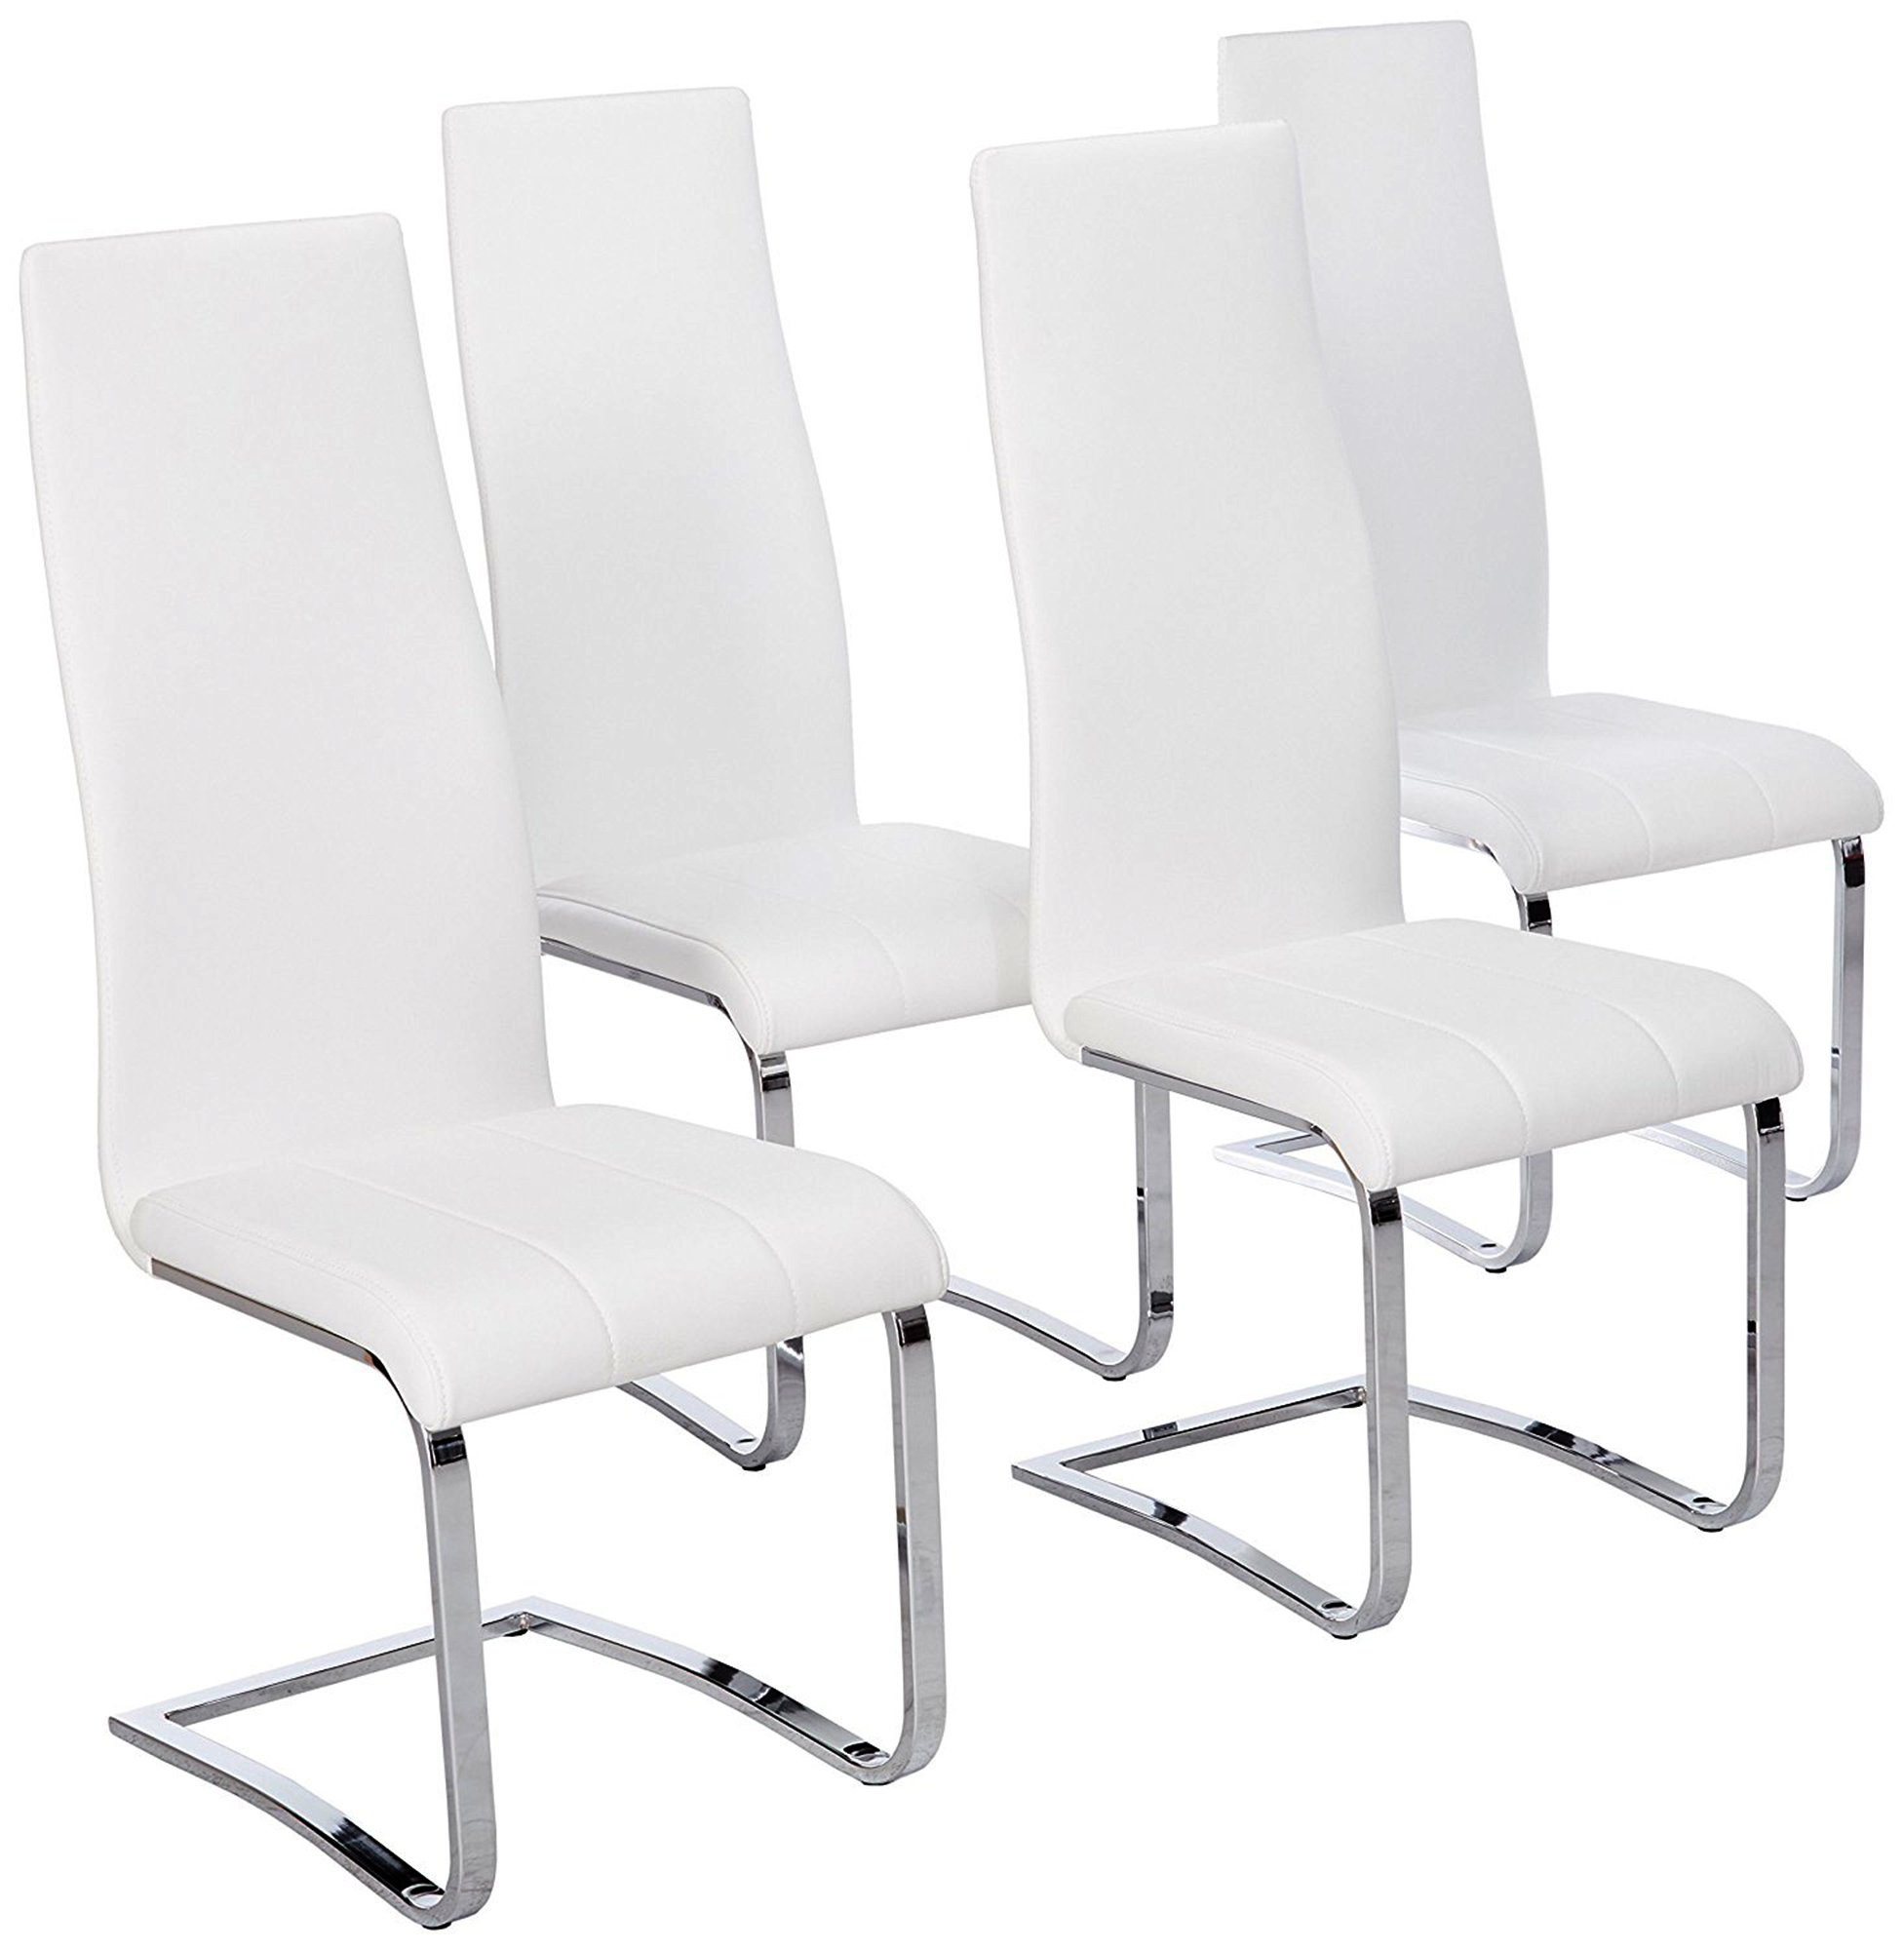 Faux Leather Dining Chairs Chrome and White (Set of 4) by Coaster Home Furnishings